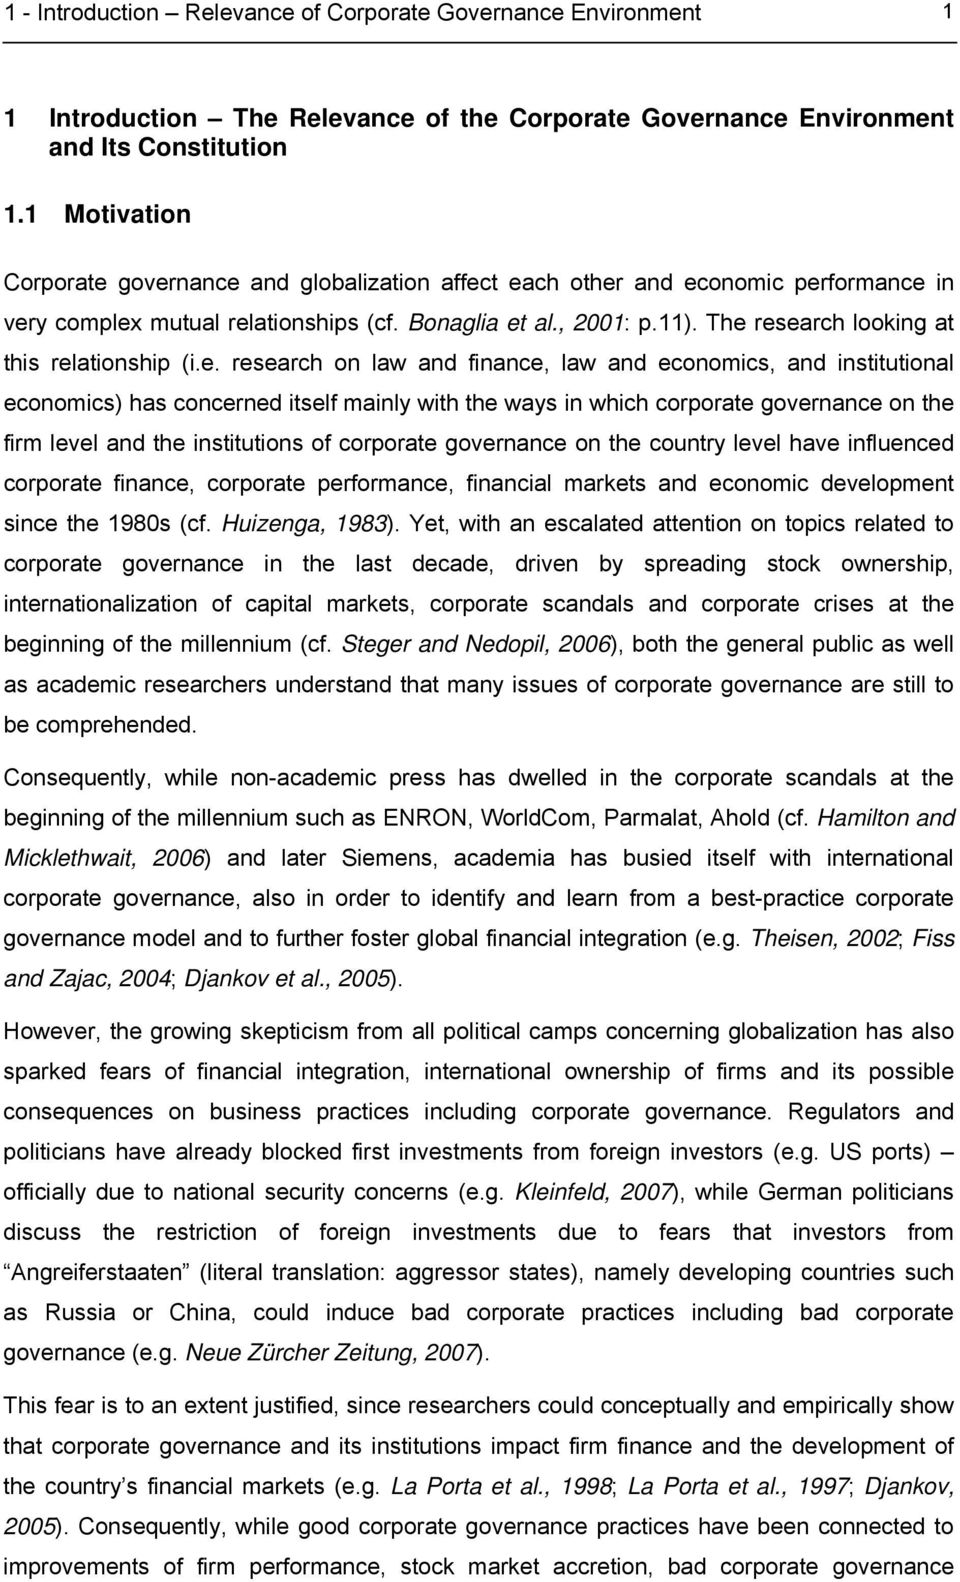 The research looking at this relationship (i.e. research on law and finance, law and economics, and institutional economics) has concerned itself mainly with the ways in which corporate governance on